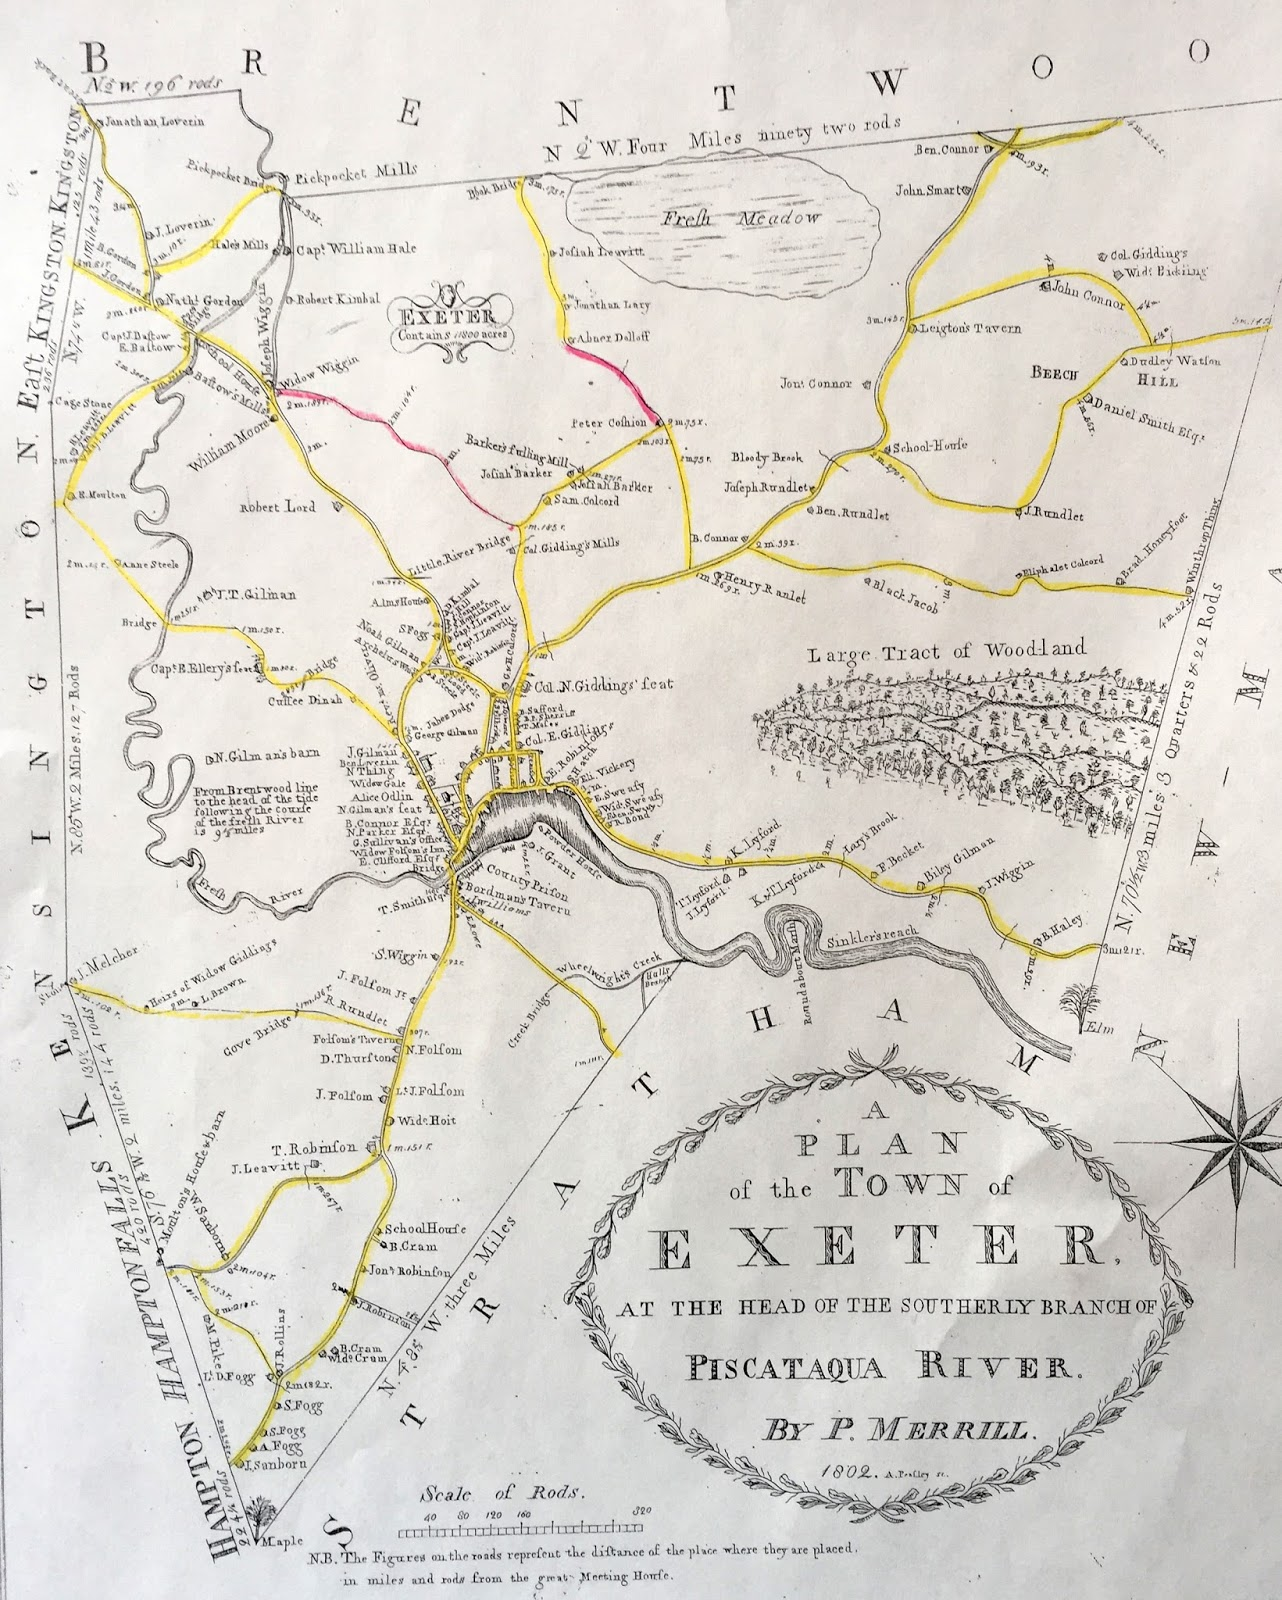 Ghost Roads of Exeter on map of hampton nh, town of somersworth nh, map of brentwood commons nh, map of nottingham nh, map of route 101 in nh, map with boundaries of seabrook nh,